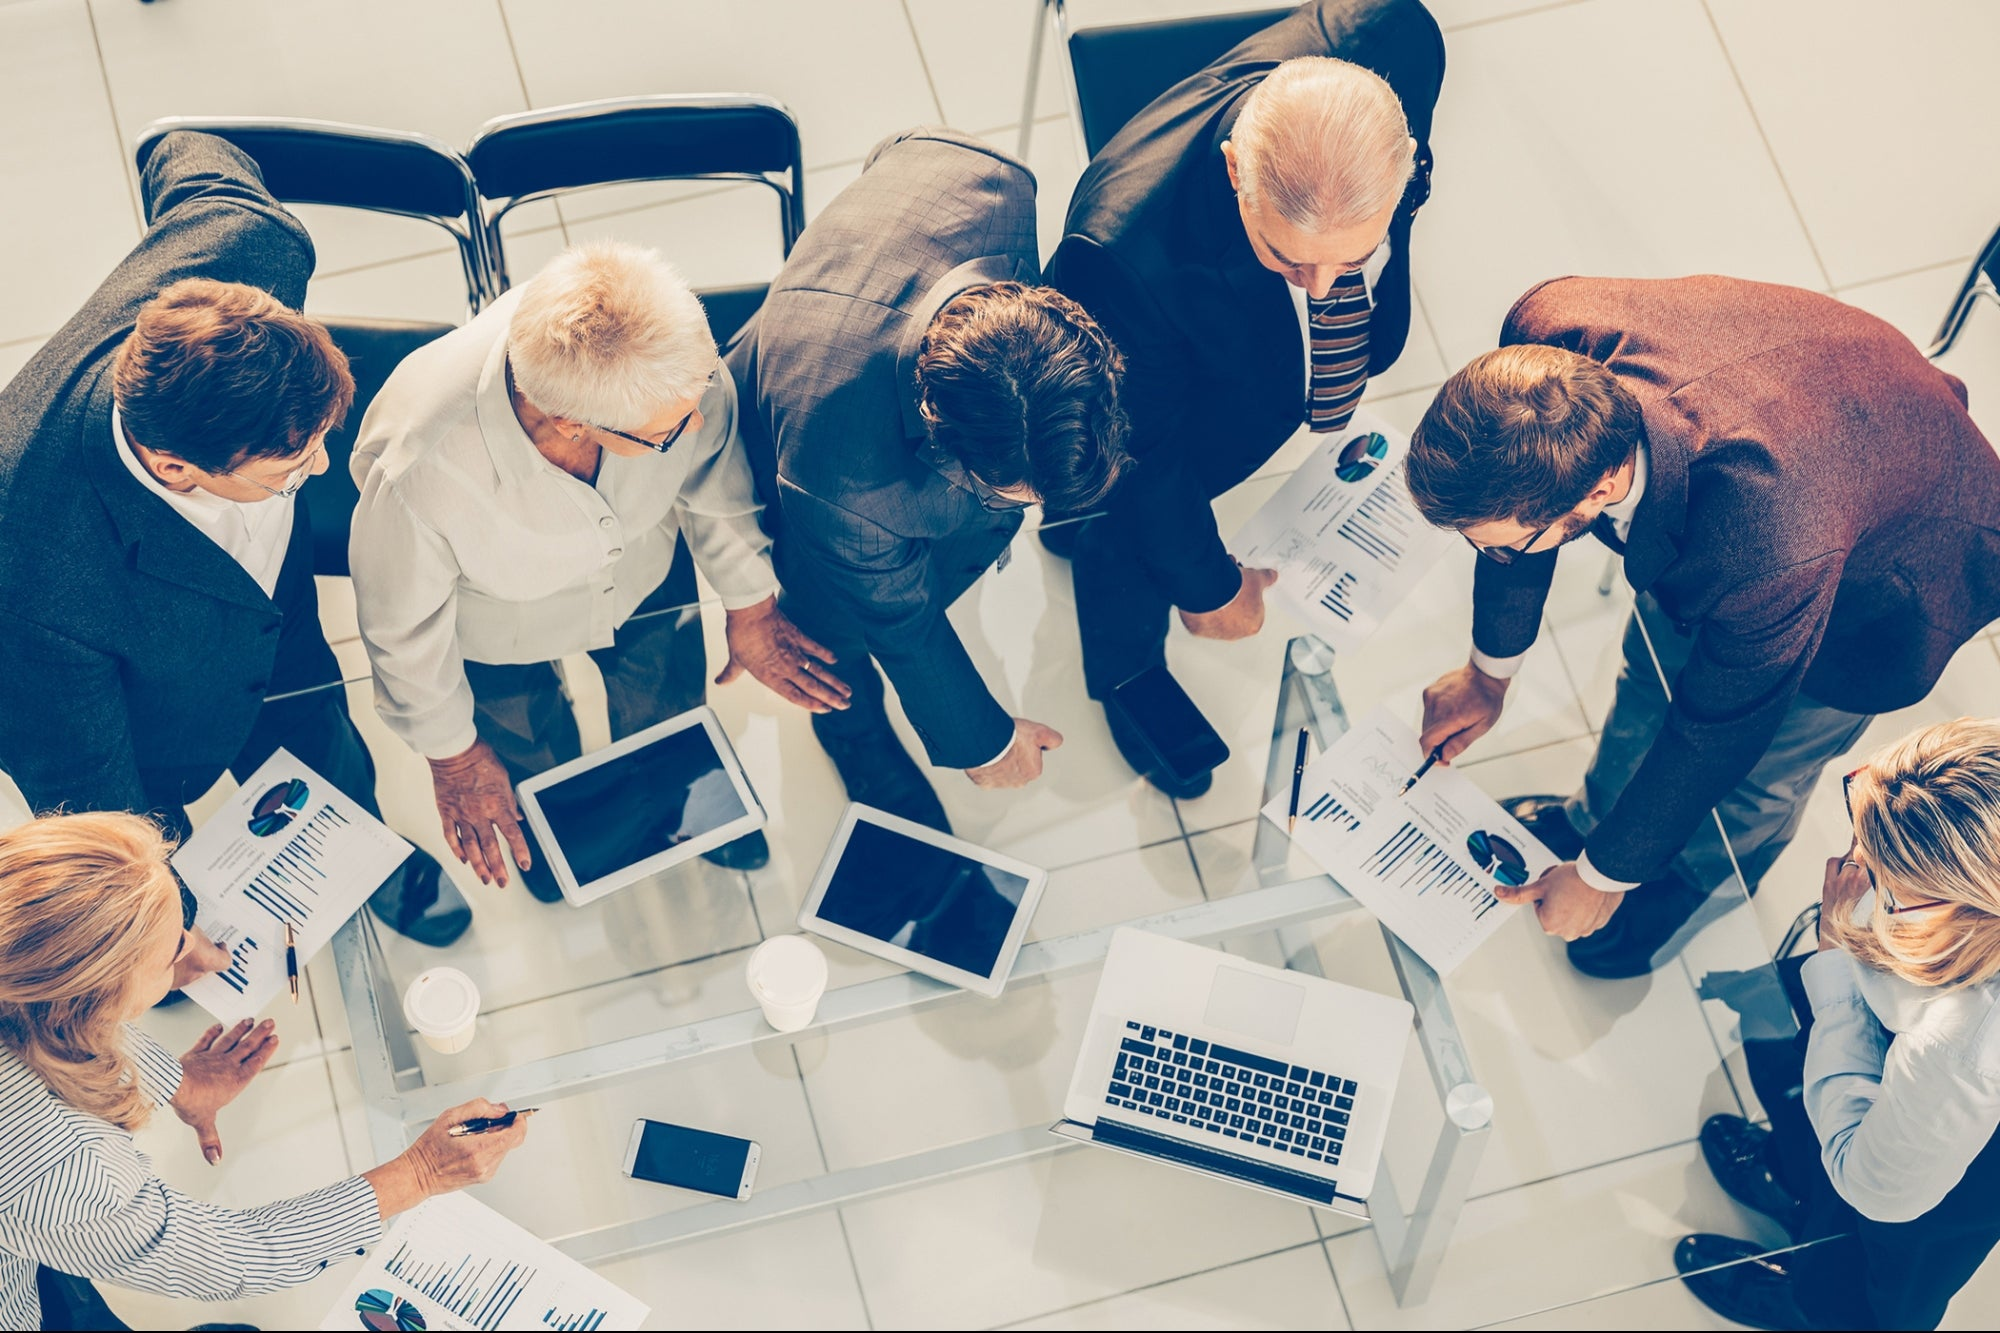 How Technology Can Empower the Workforce